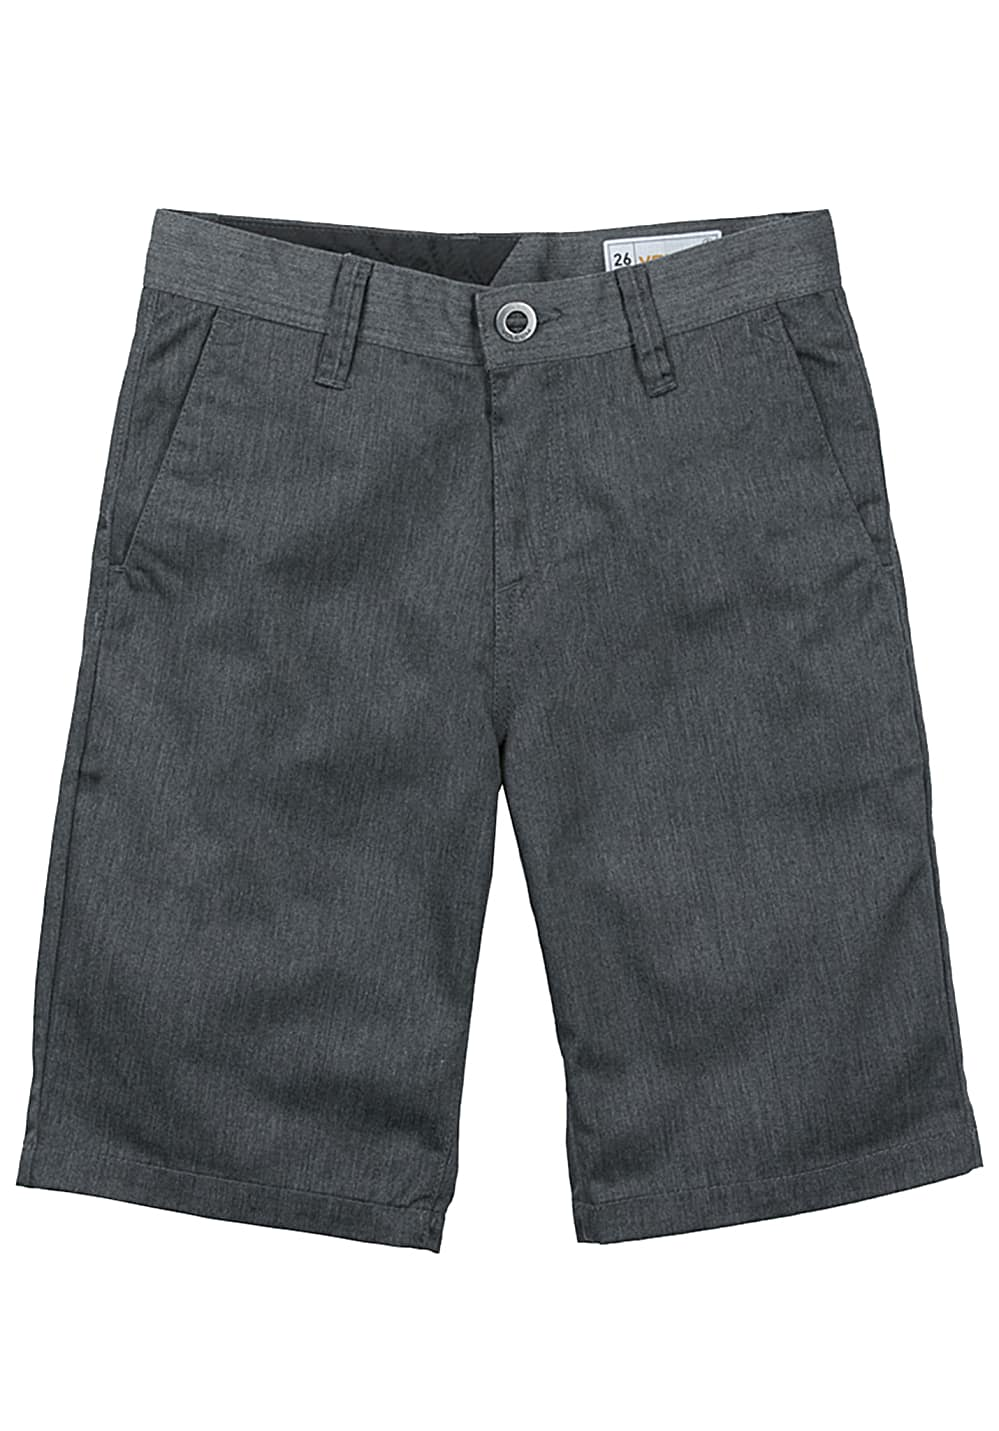 Boyshosen - Volcom Frickin Chino Shorts Grau - Onlineshop Planet Sports